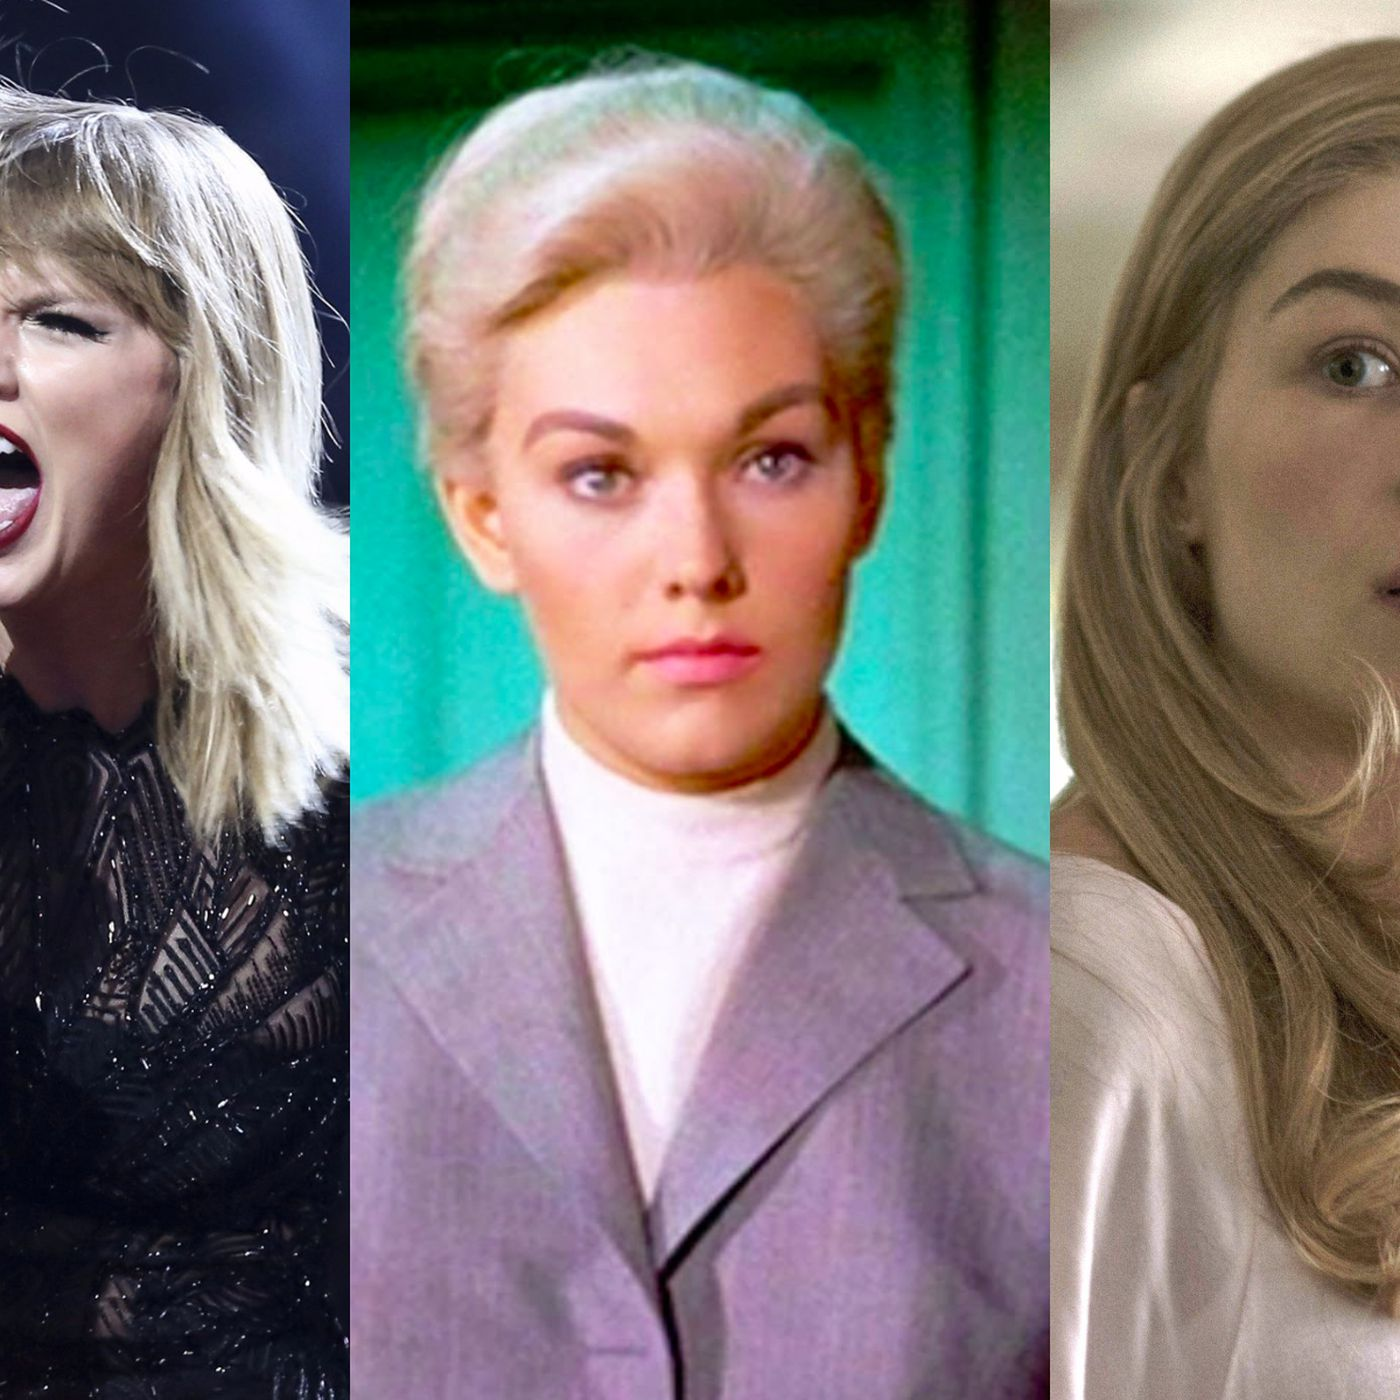 Taylor Swift S New Song Evokes 2 Iconic Movies In Both Style And Content Vox